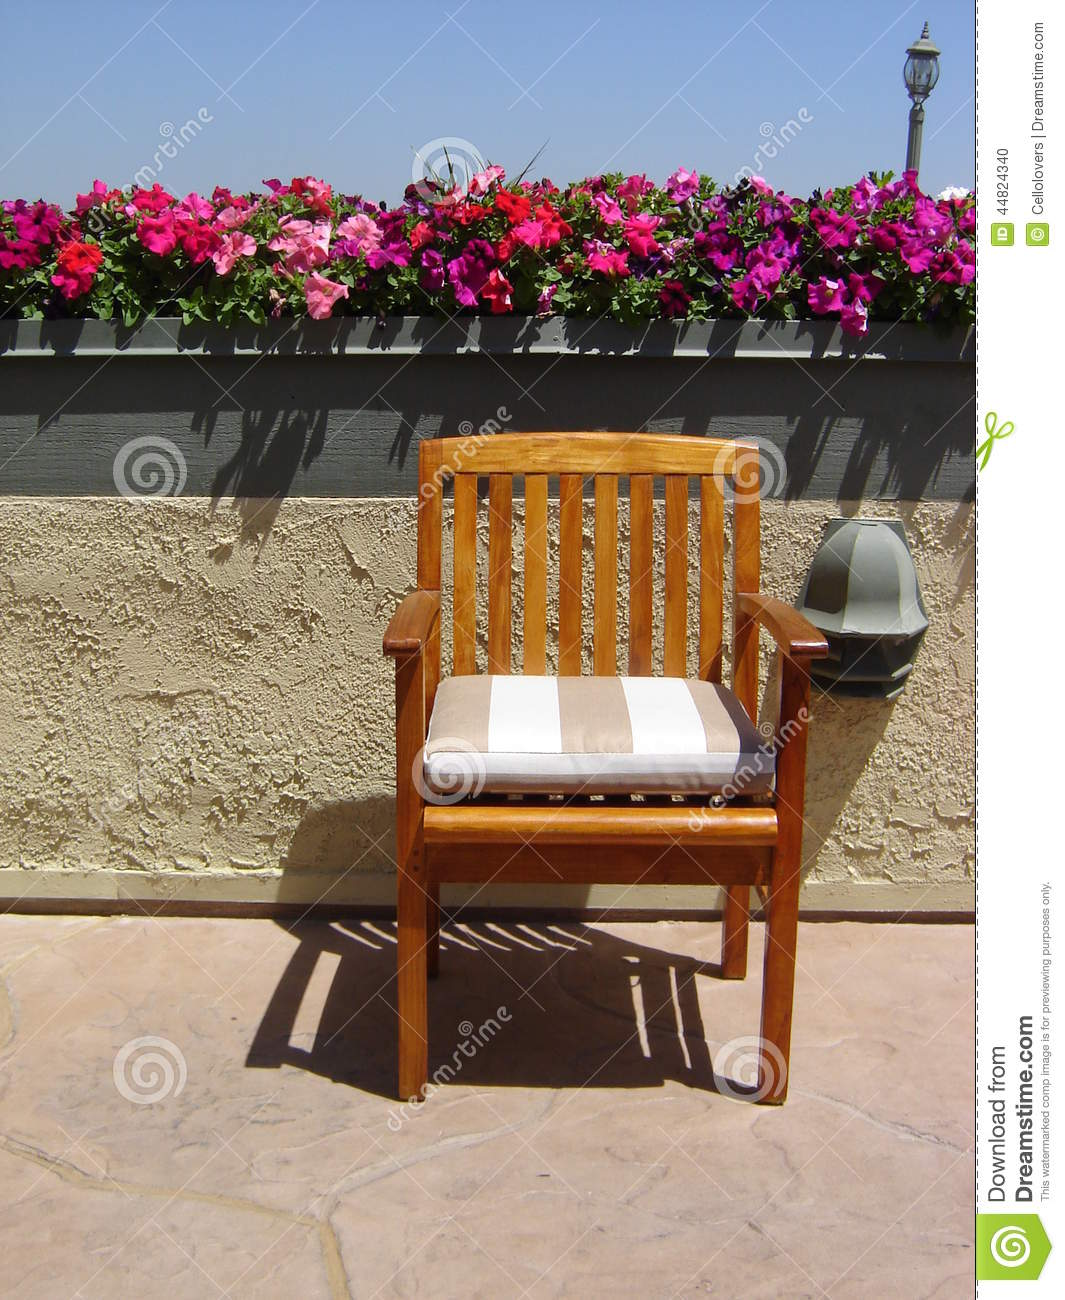 Flowers Top Of Chair Rooftop Patio Old Fashioned Light